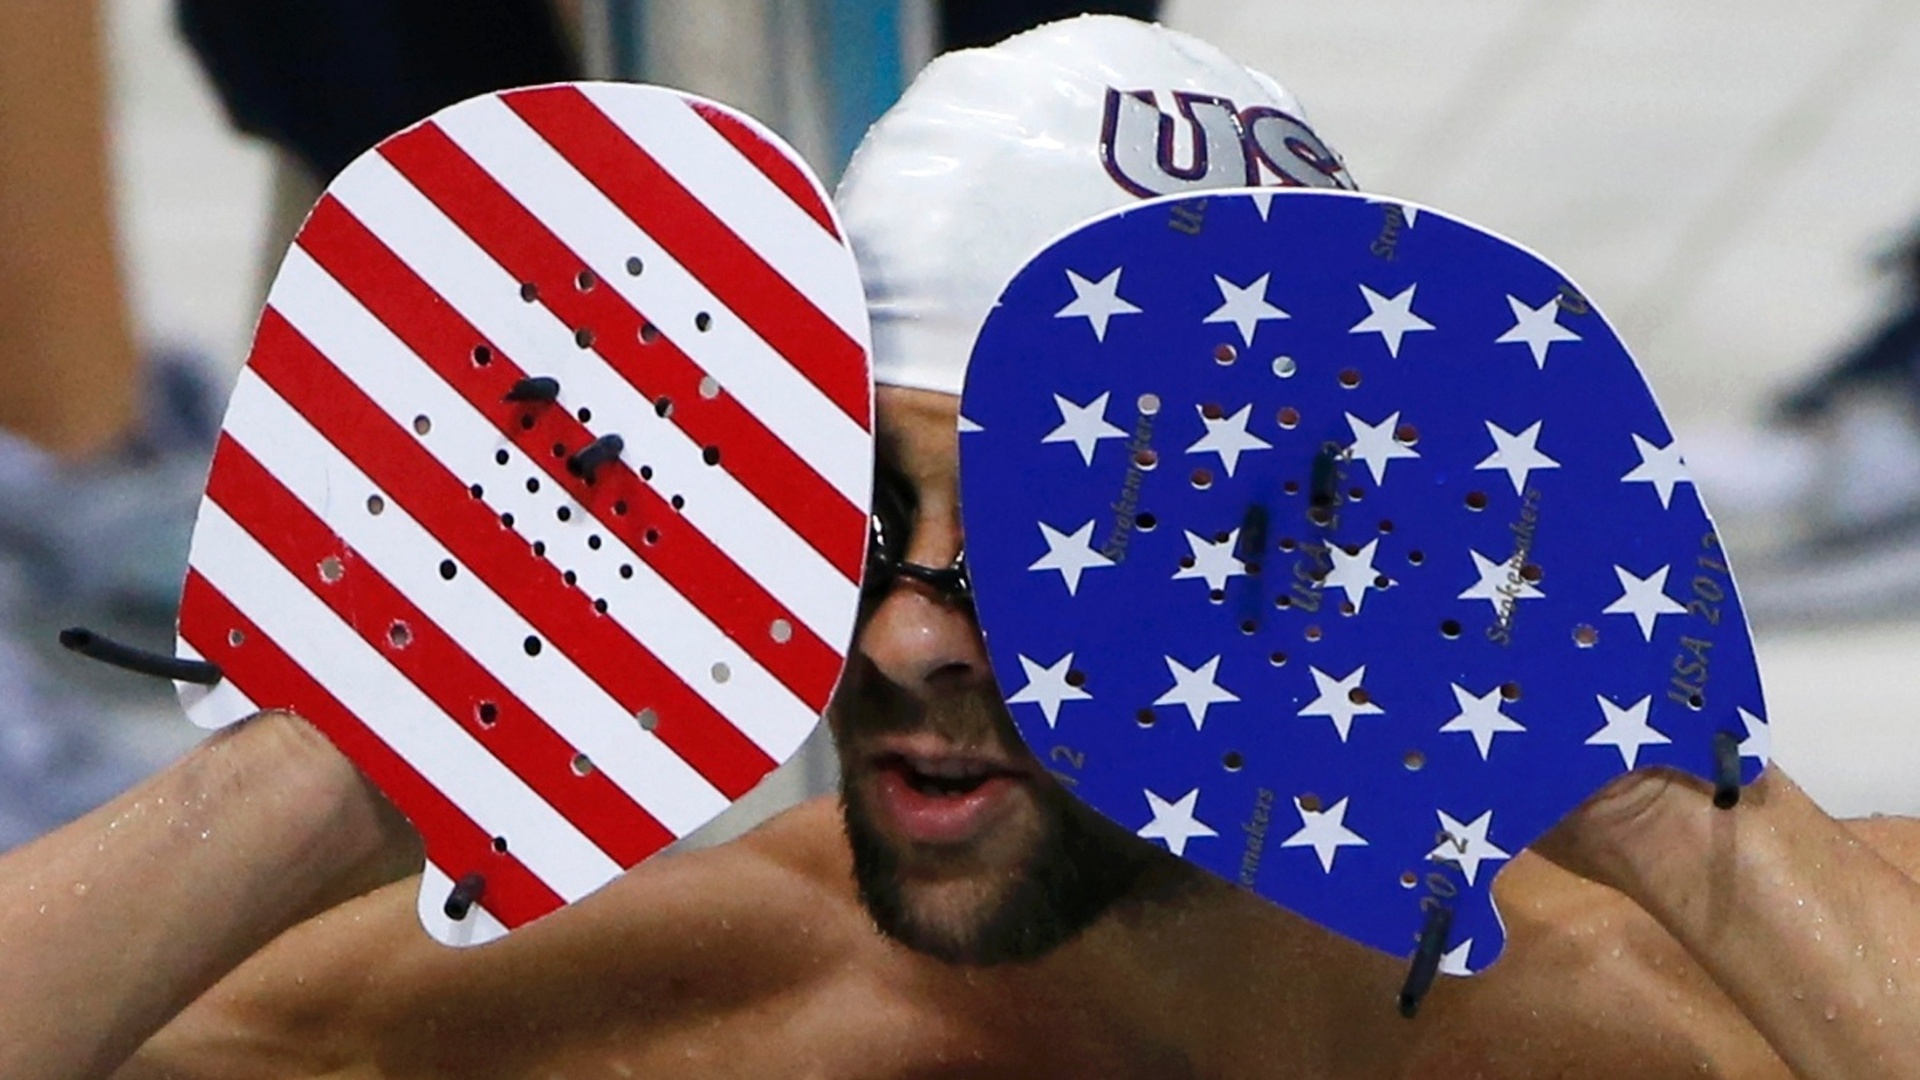 Michael Phelps tenta remover seus culos de natao enquanto usa equipamento nas cores da bandeira dos EUA (24/07/2012)